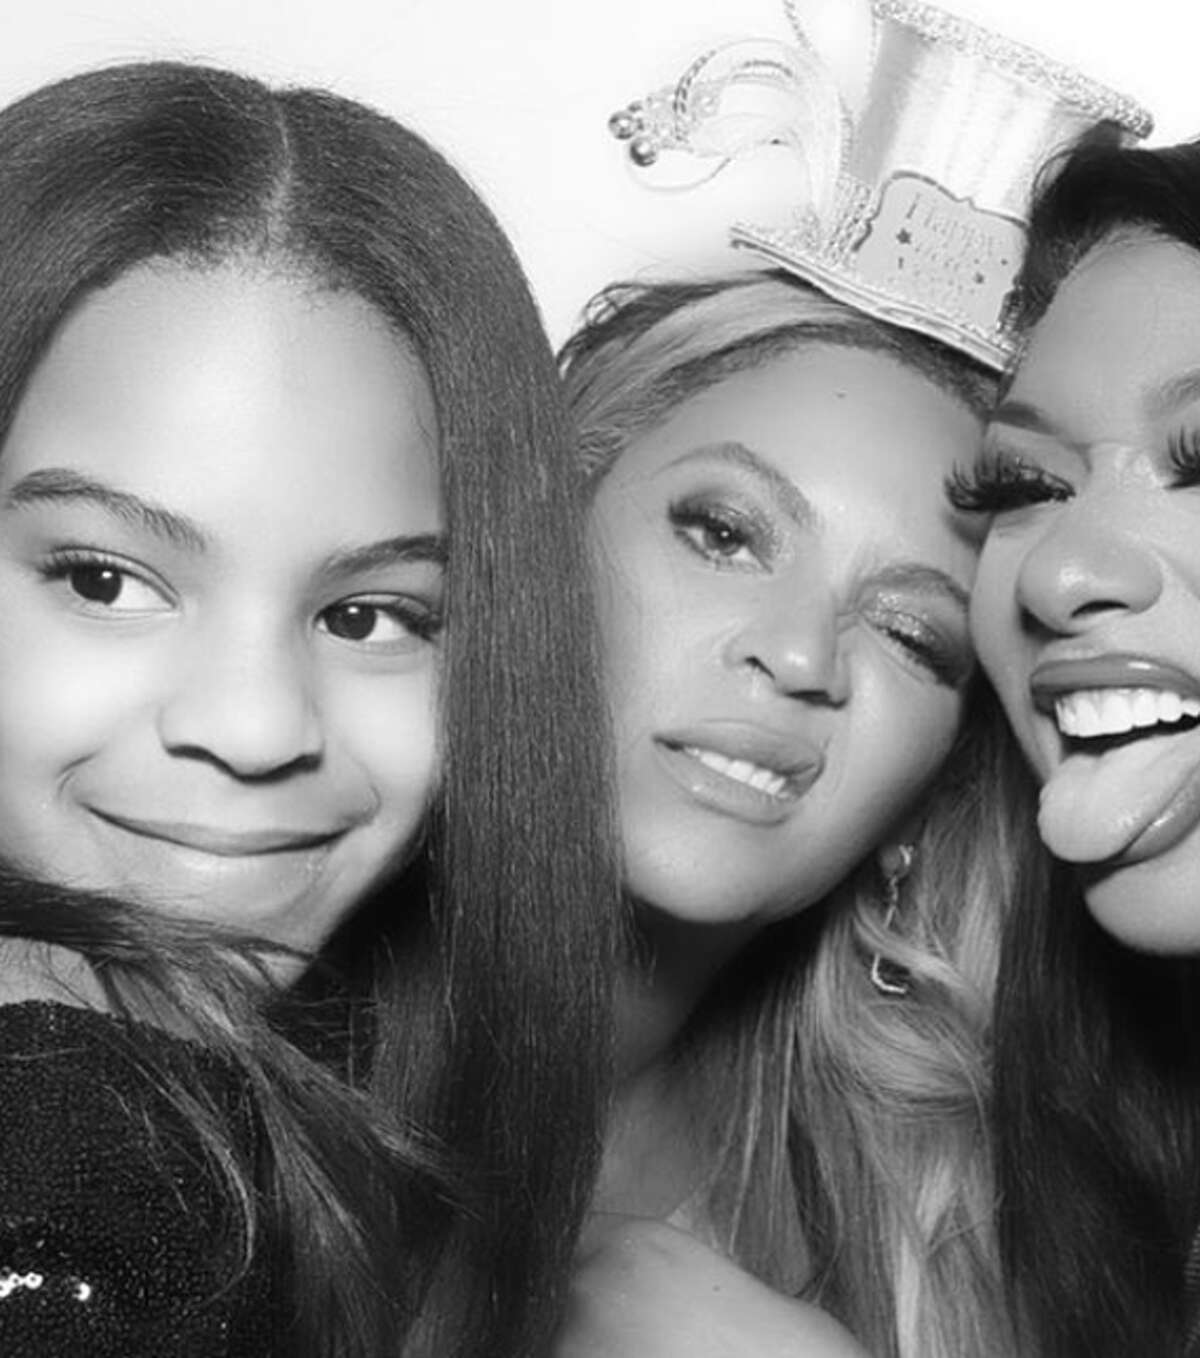 Blue Ivy Carter, Beyoncé and Megan Thee Stallion pose on New Year's Eve.